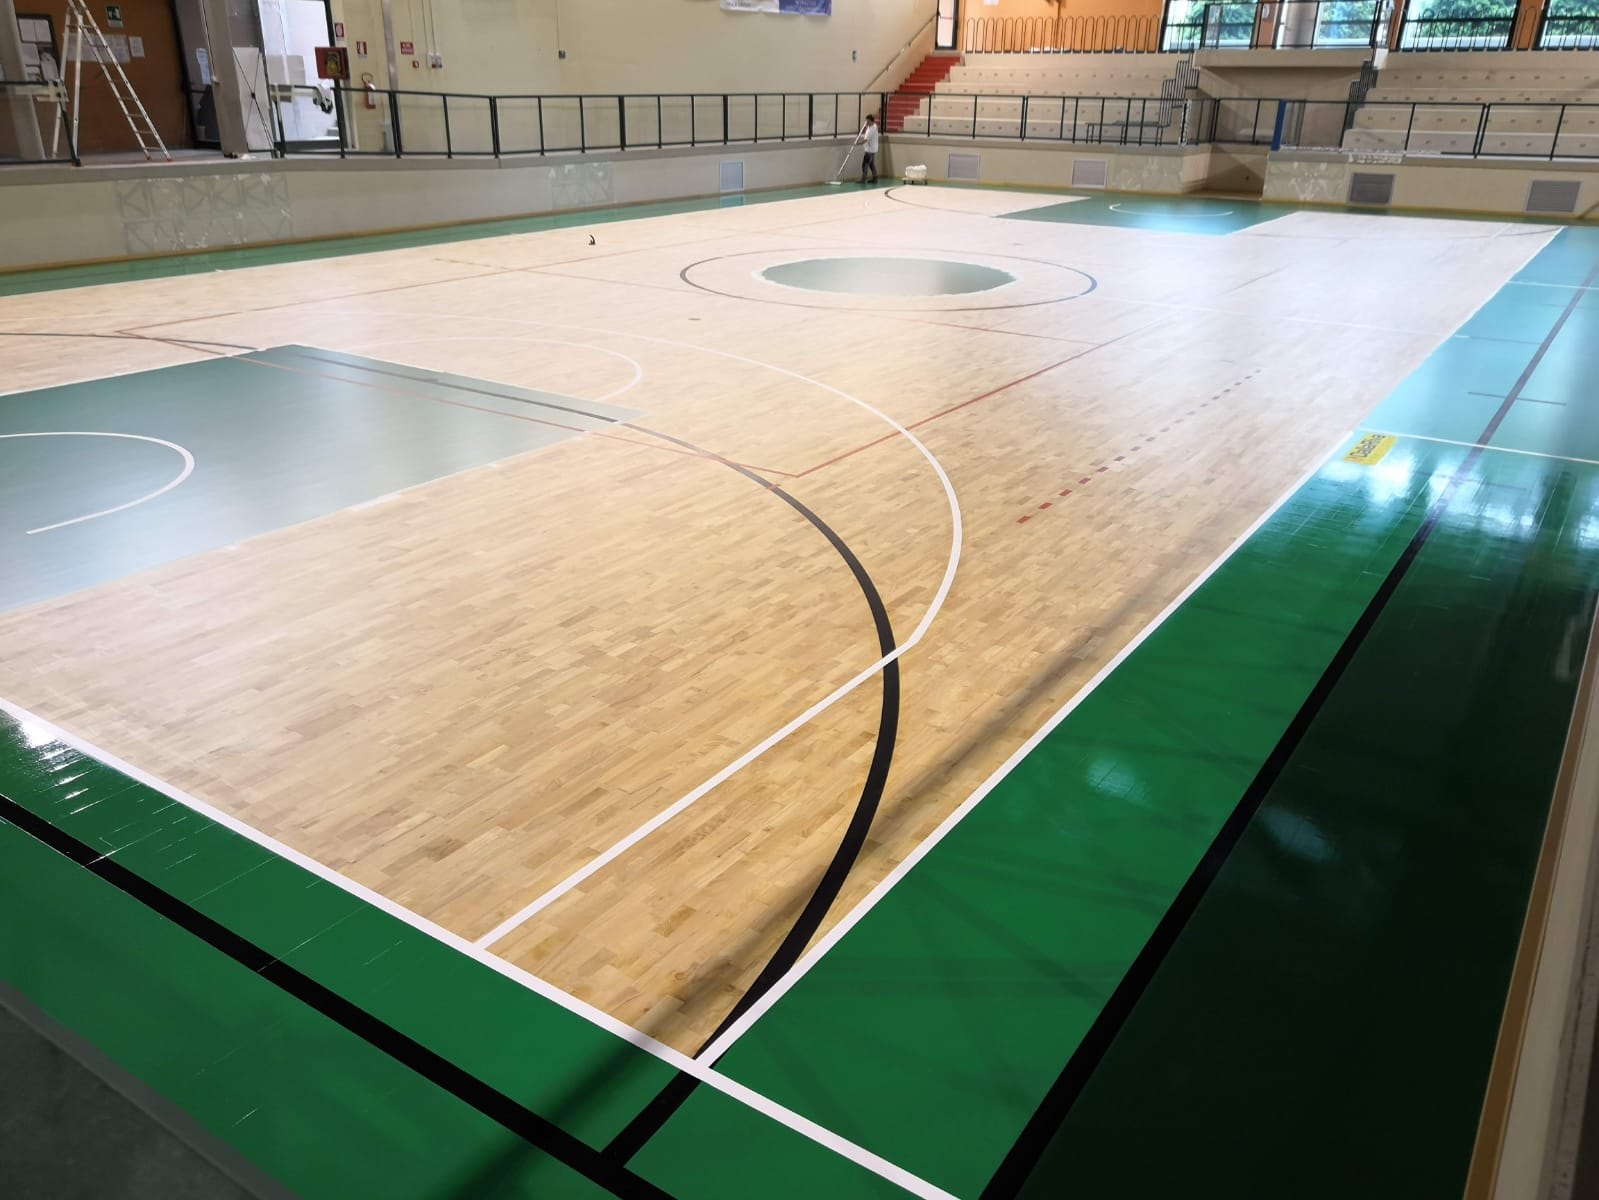 The final result of sports flooring